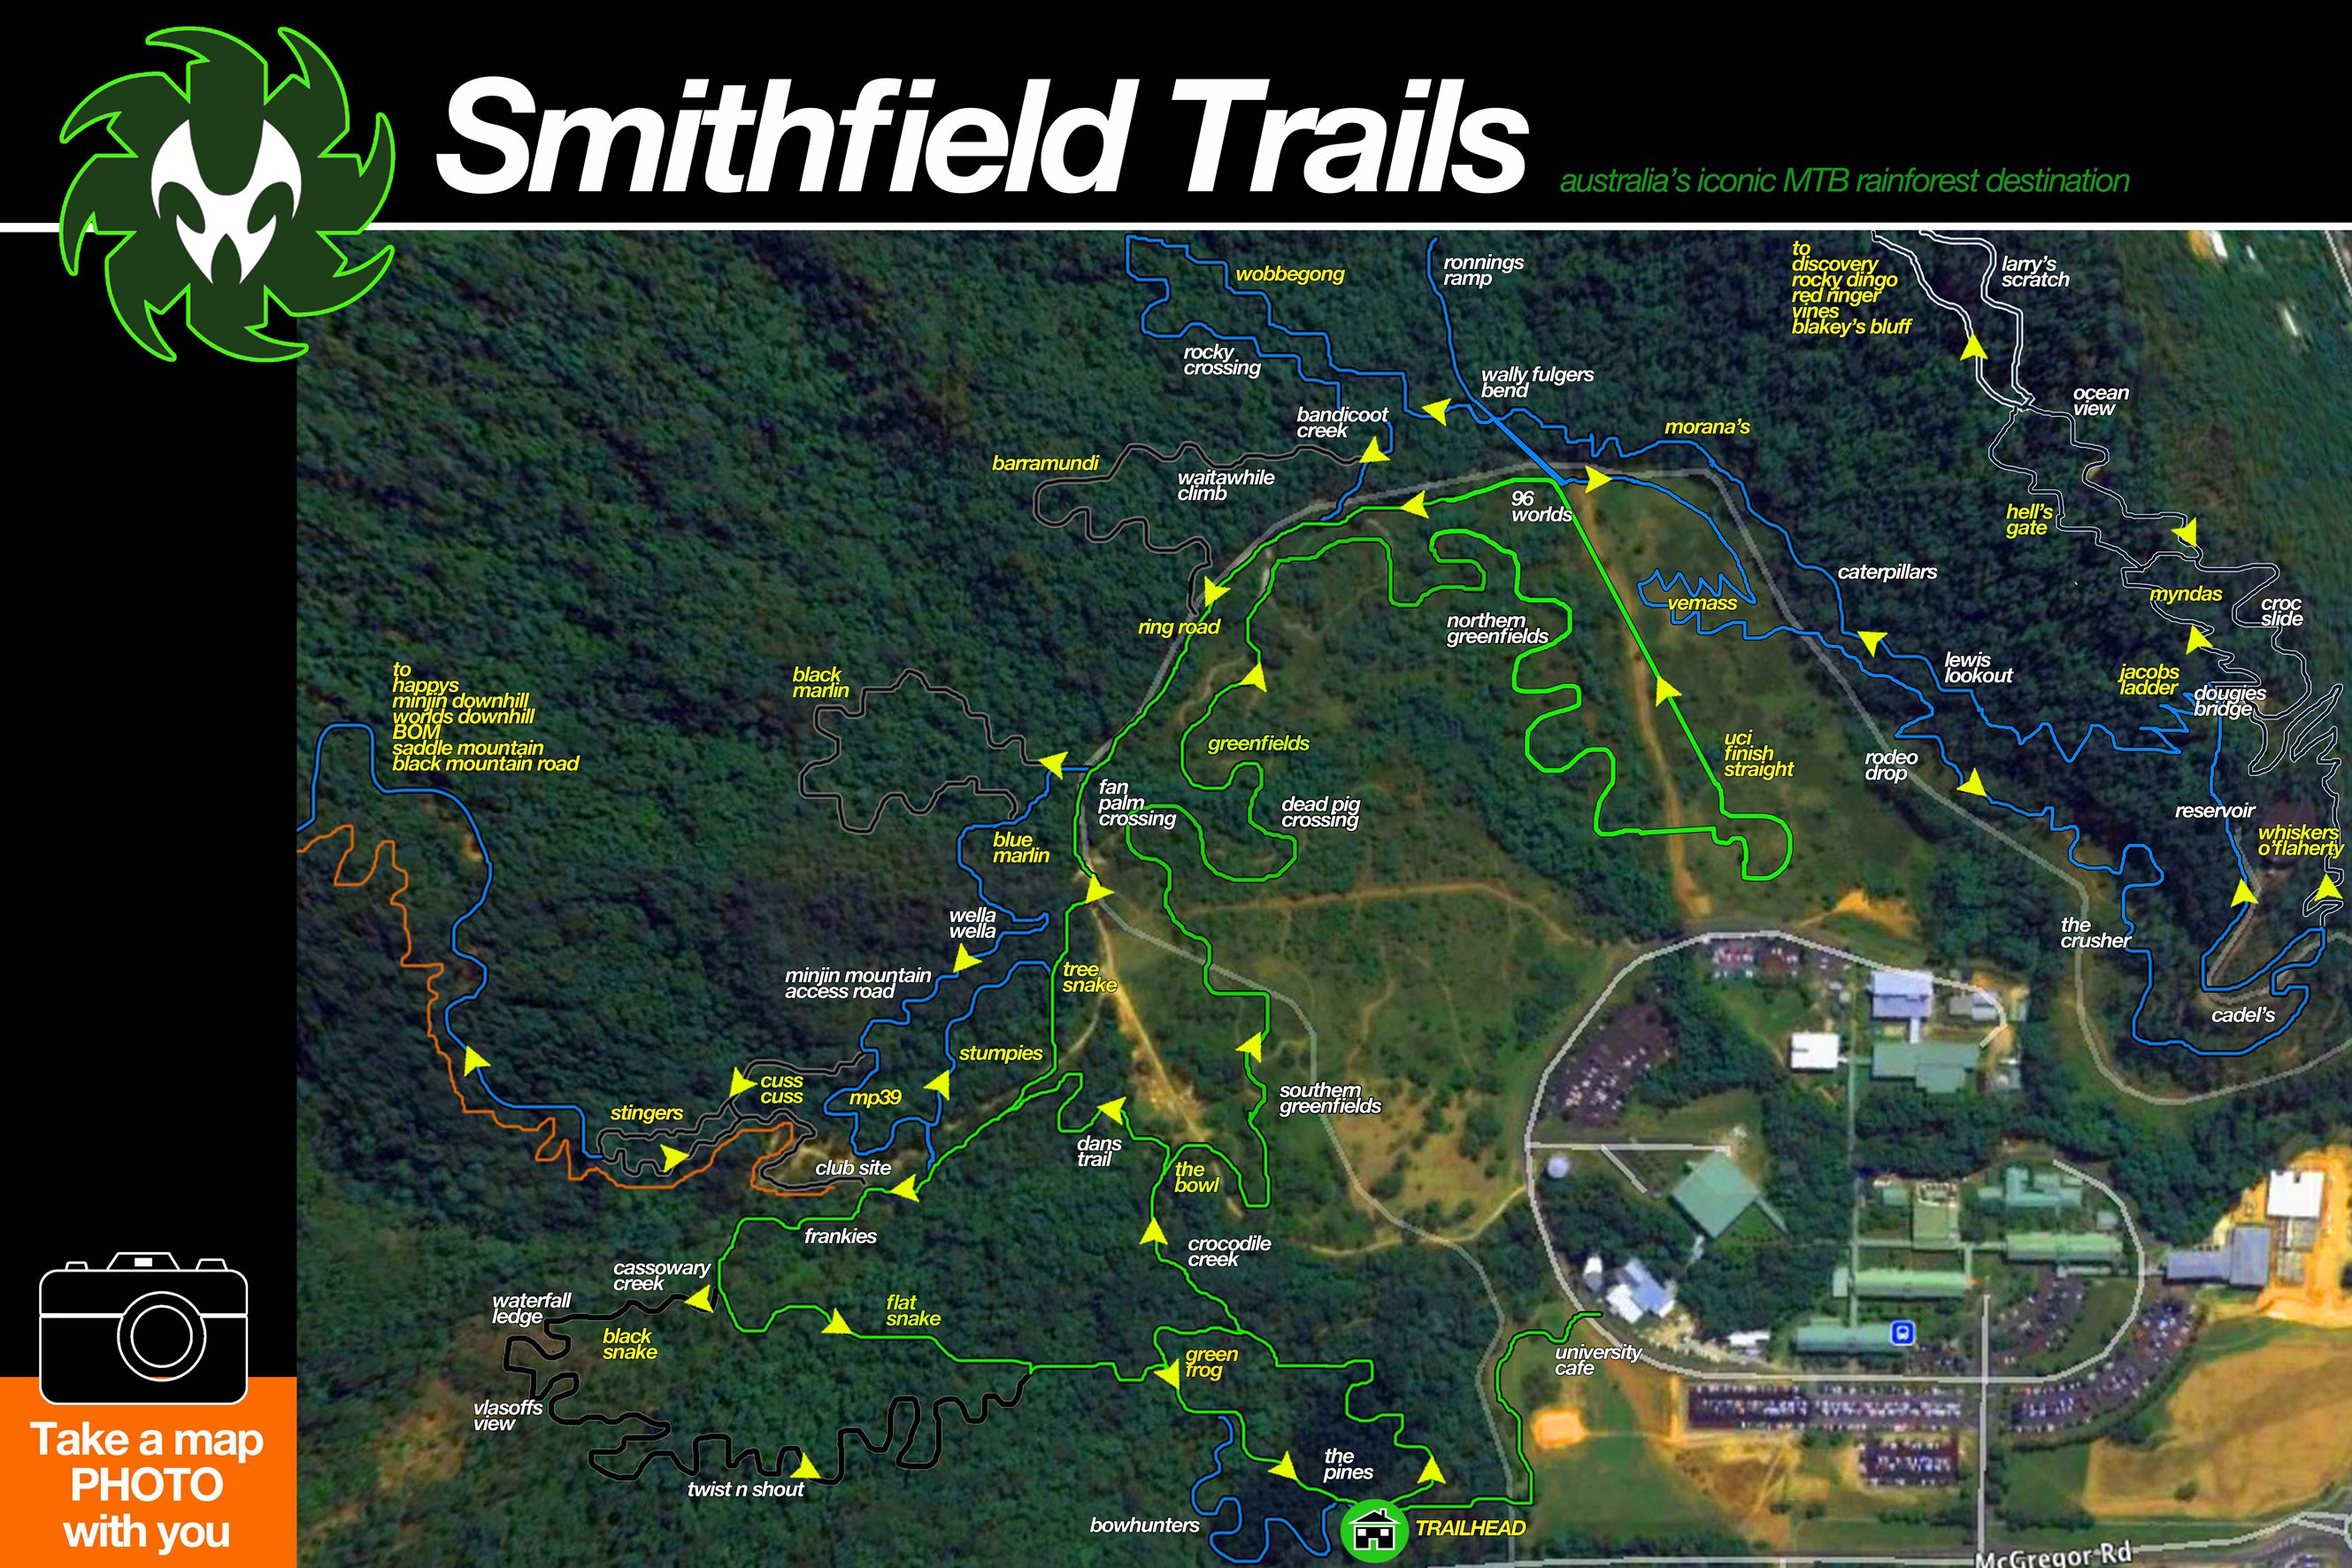 smithfield-mountain-bike-trails